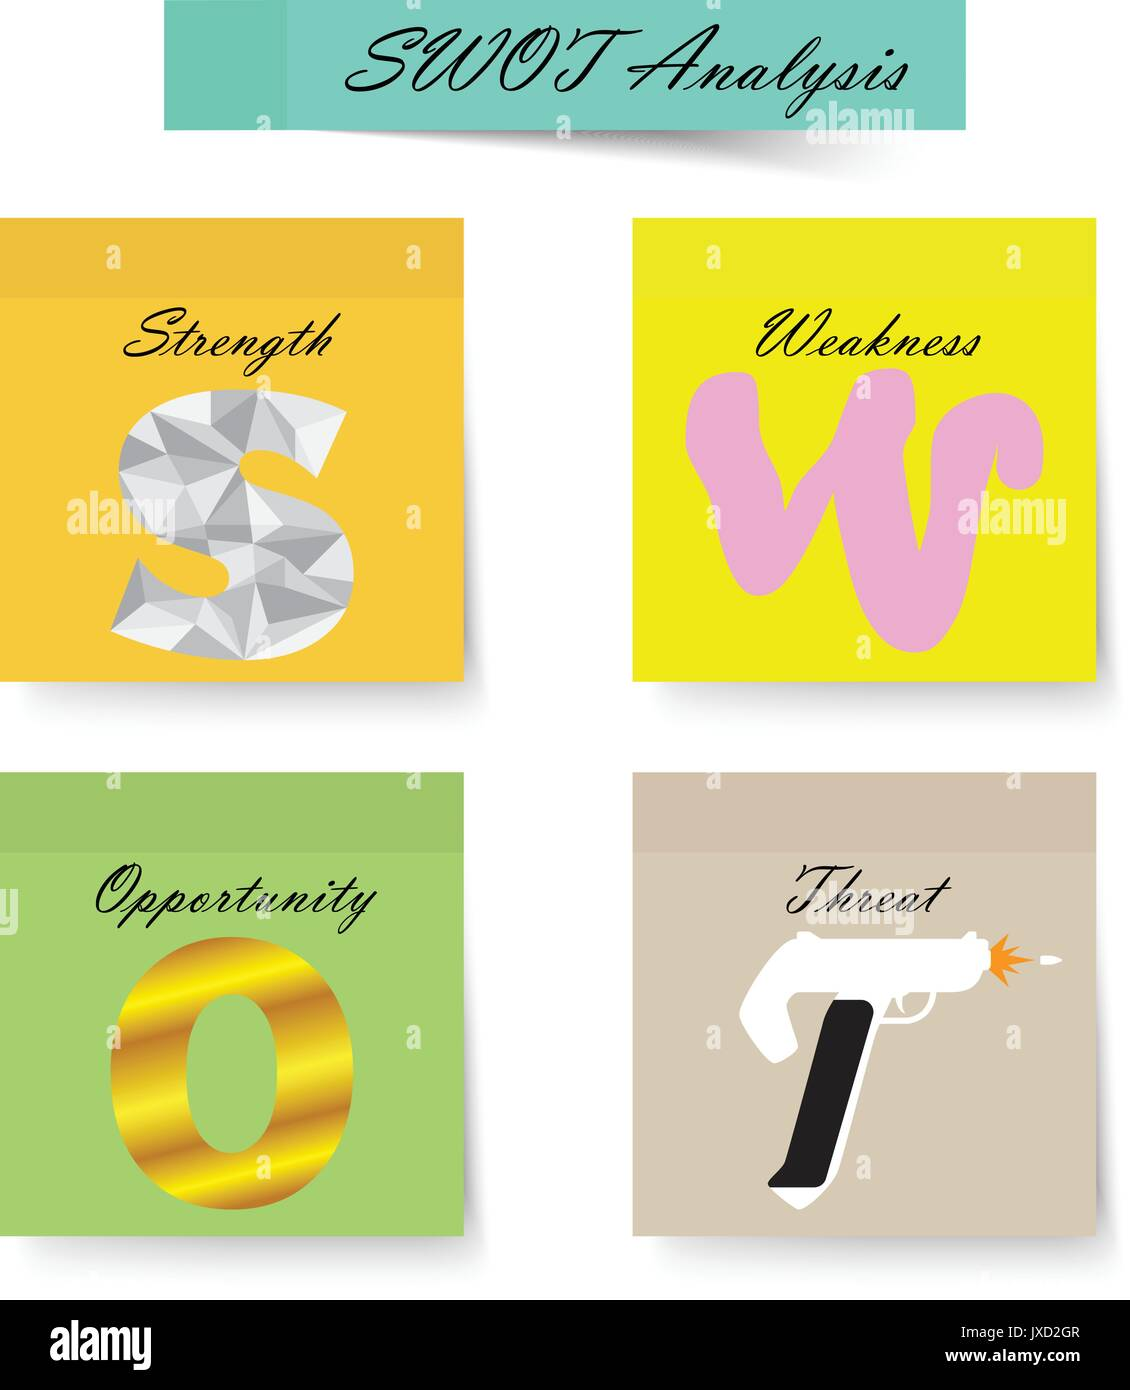 Education Sticky Notes As SWOT Chart Means Strength, Weakness, Opportunity, Threat.The SW Are Controllable Factors And The OT Are Uncontrollable Ones. - Stock Image